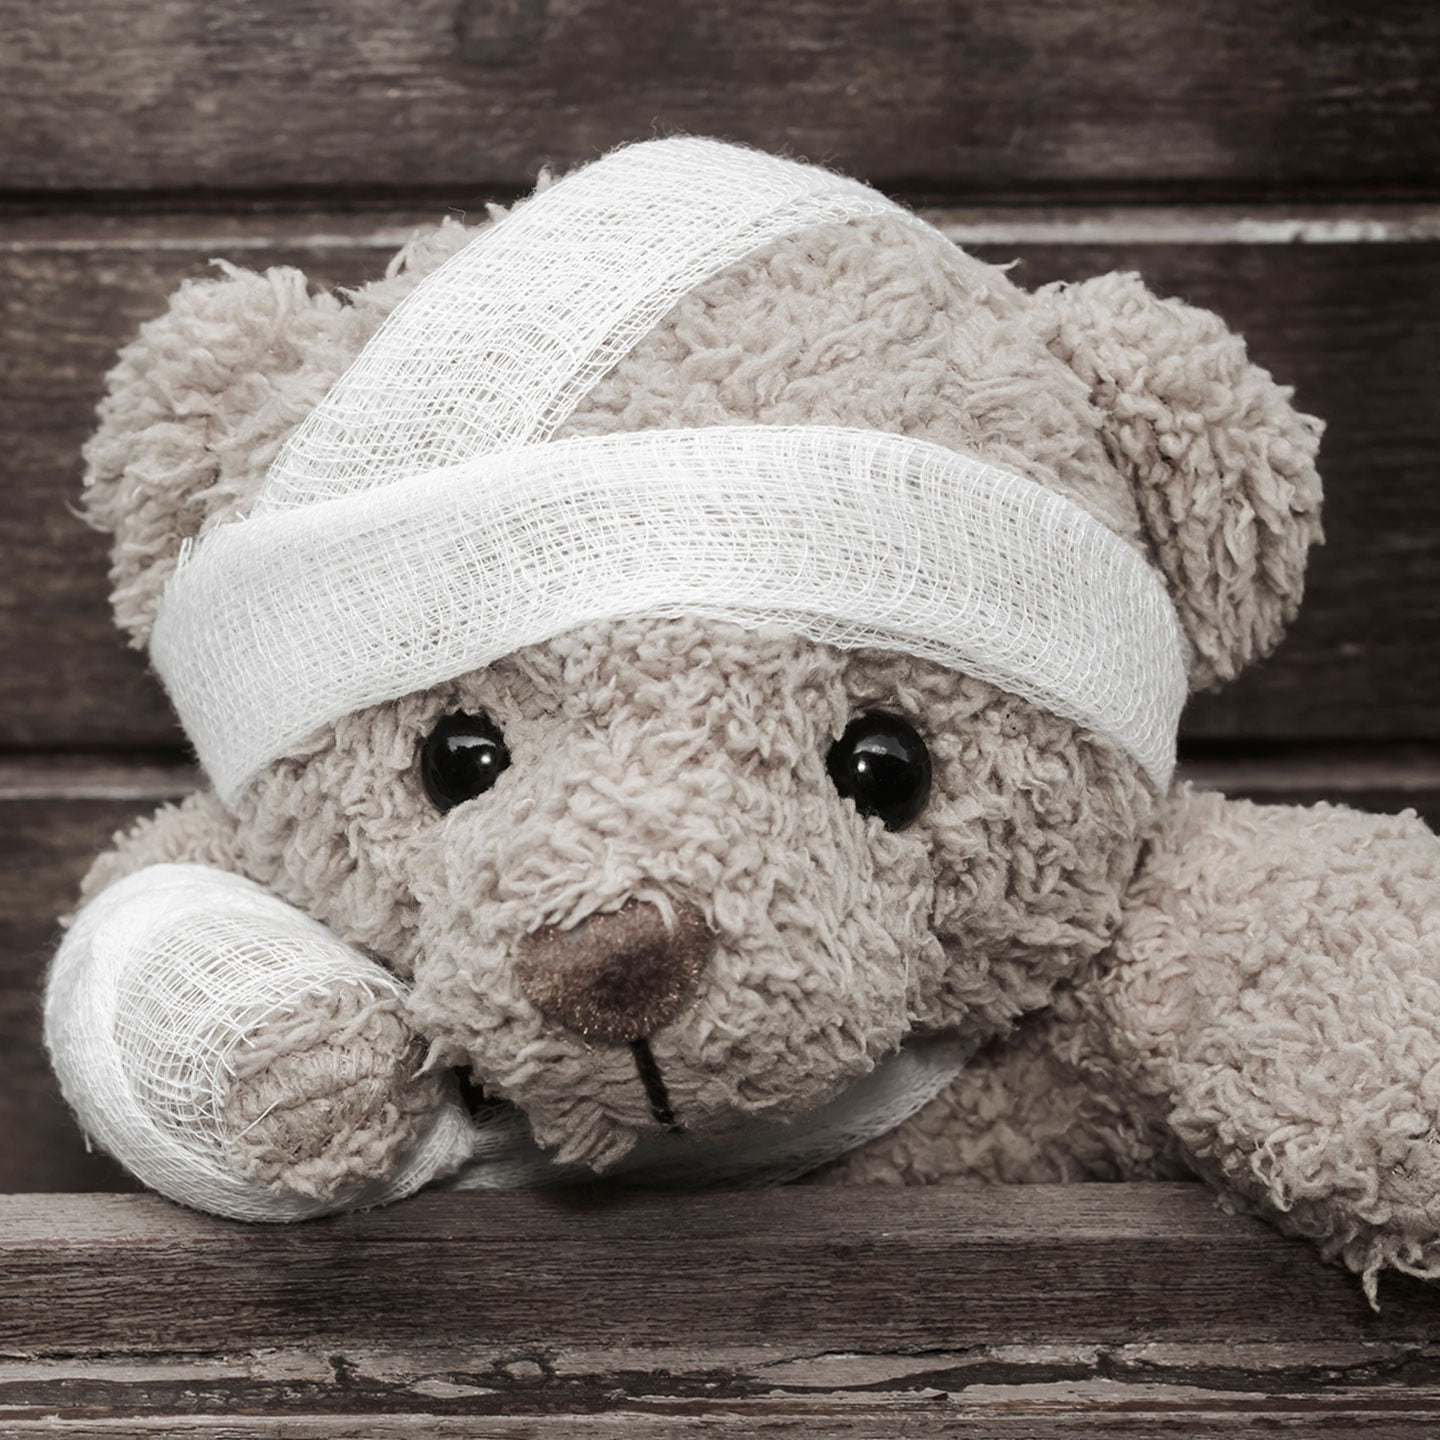 Photo of a teddy bear with gauze bandage wrappings